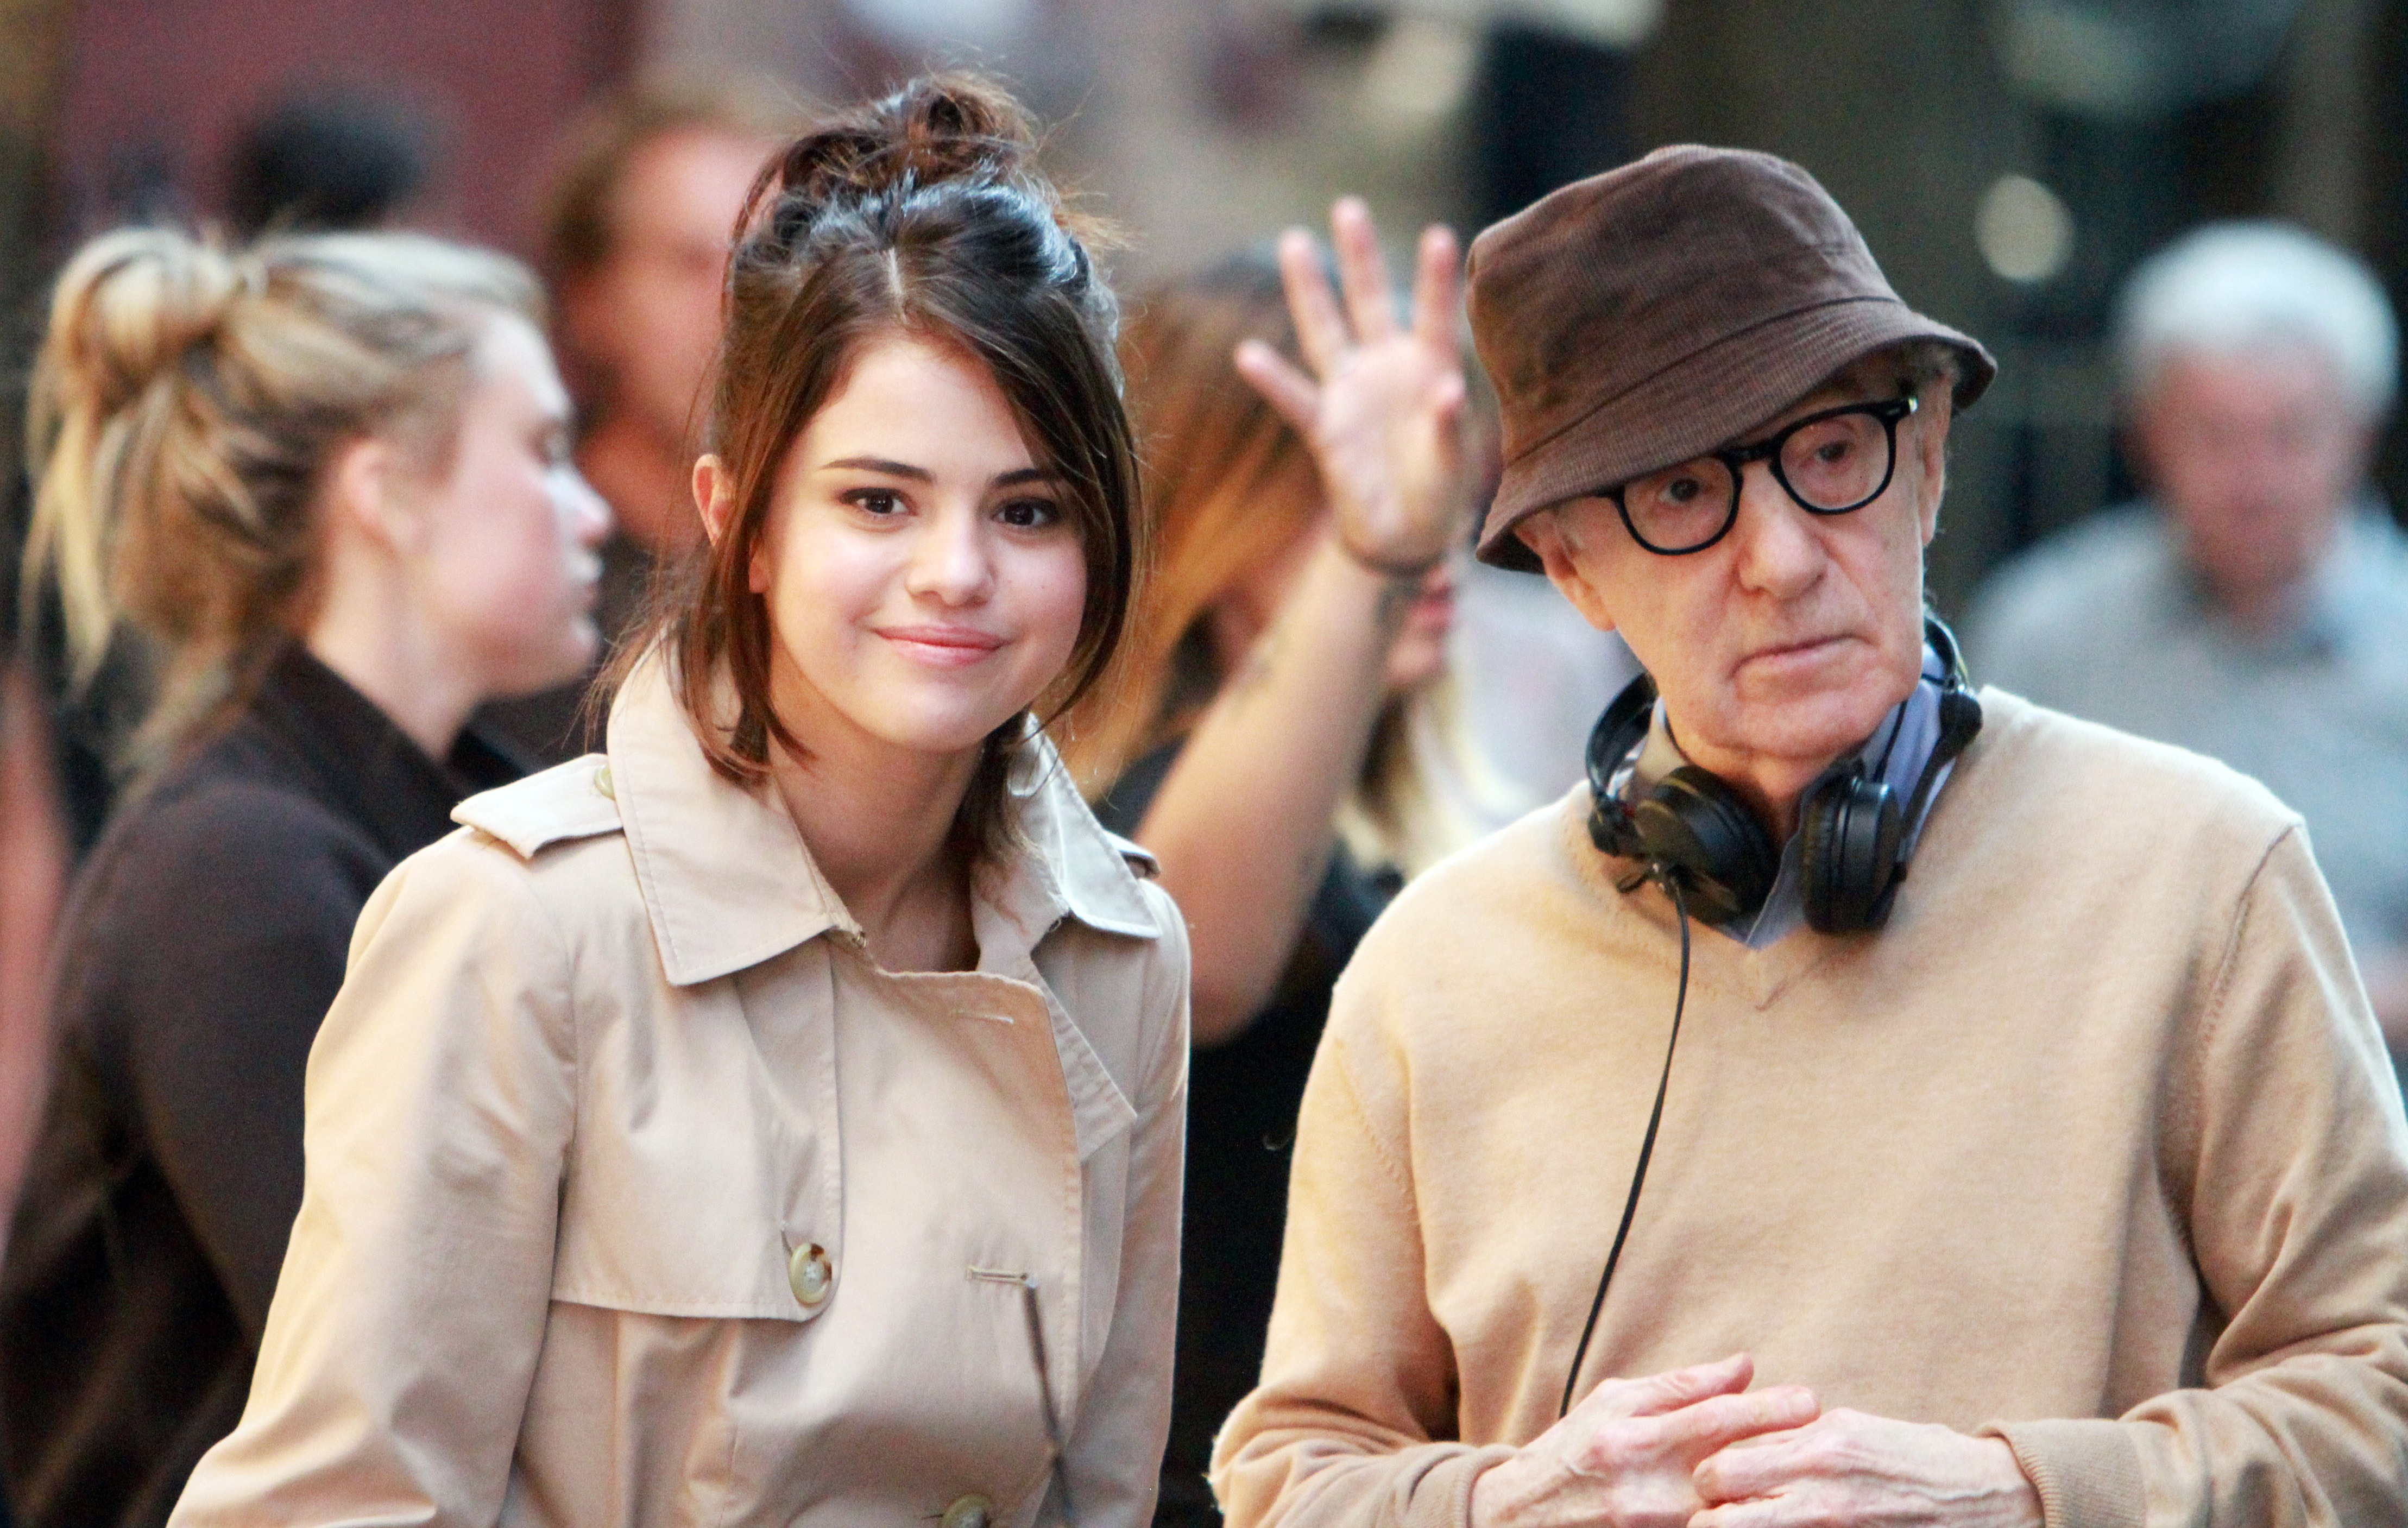 Woody Allen s New Features A Scene Involving a 15 Year Old